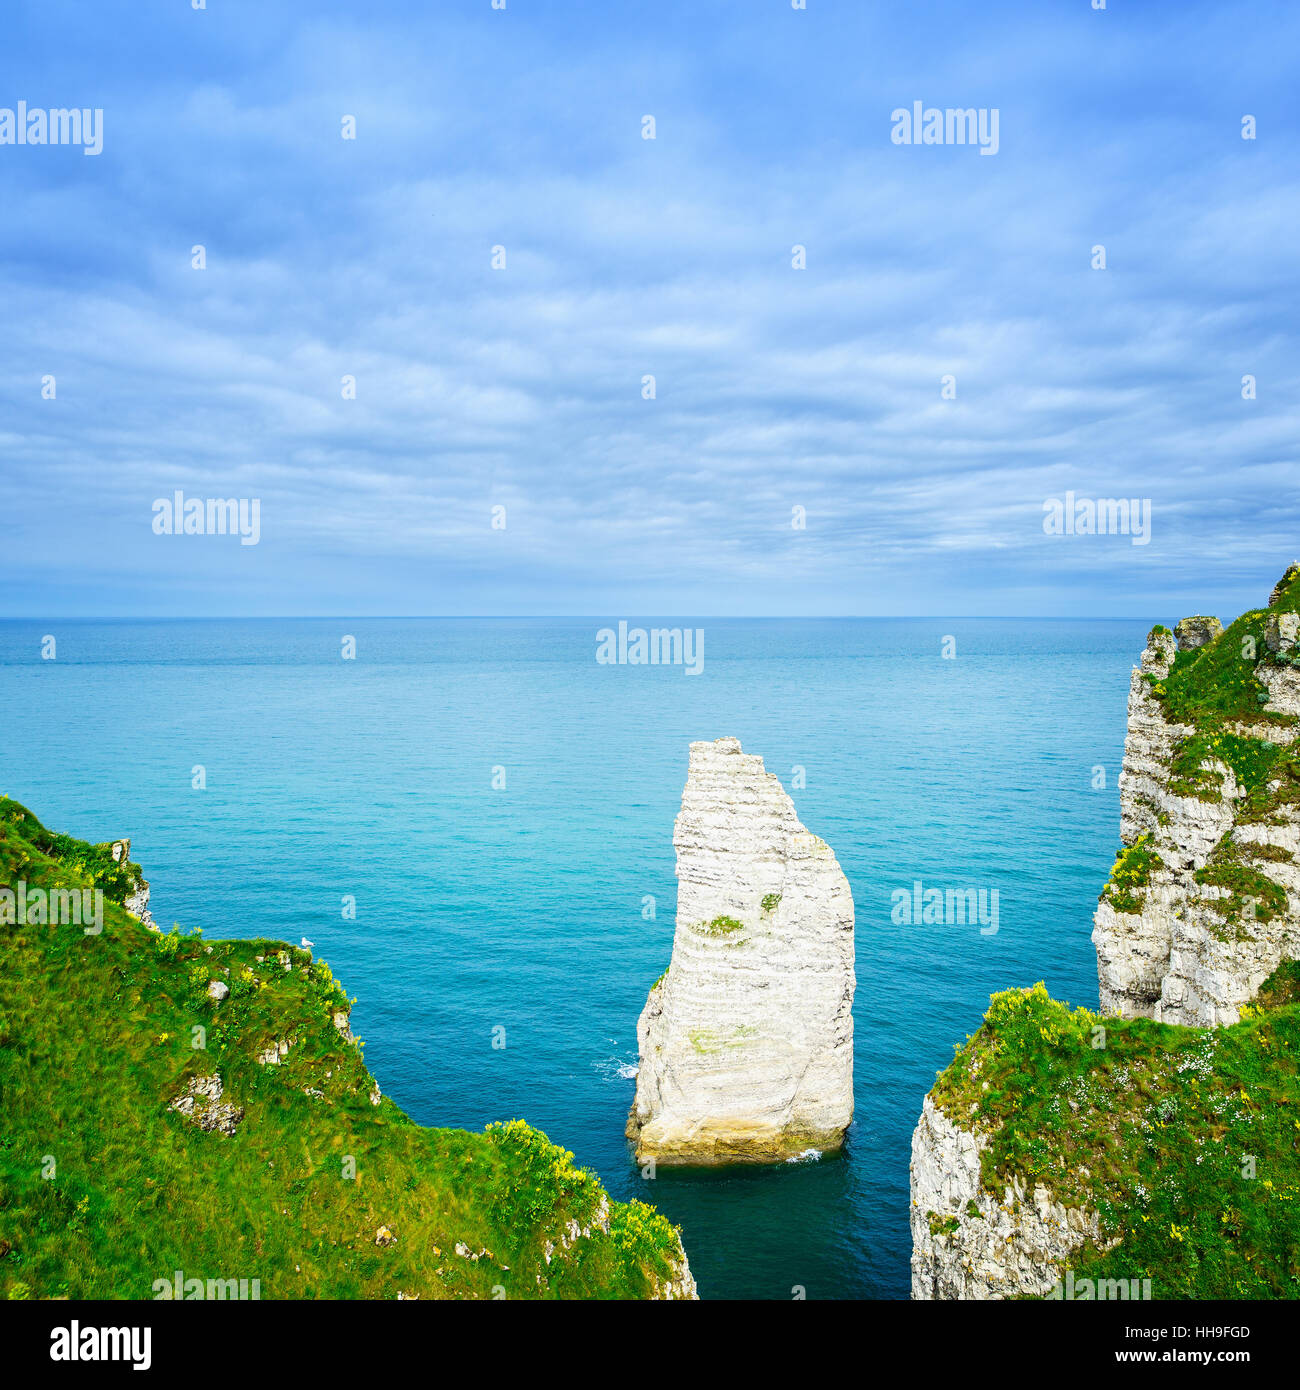 Etretat Aval cliff rock landmark and blue ocean. Aerial view. Normandy, France, Europe. - Stock Image